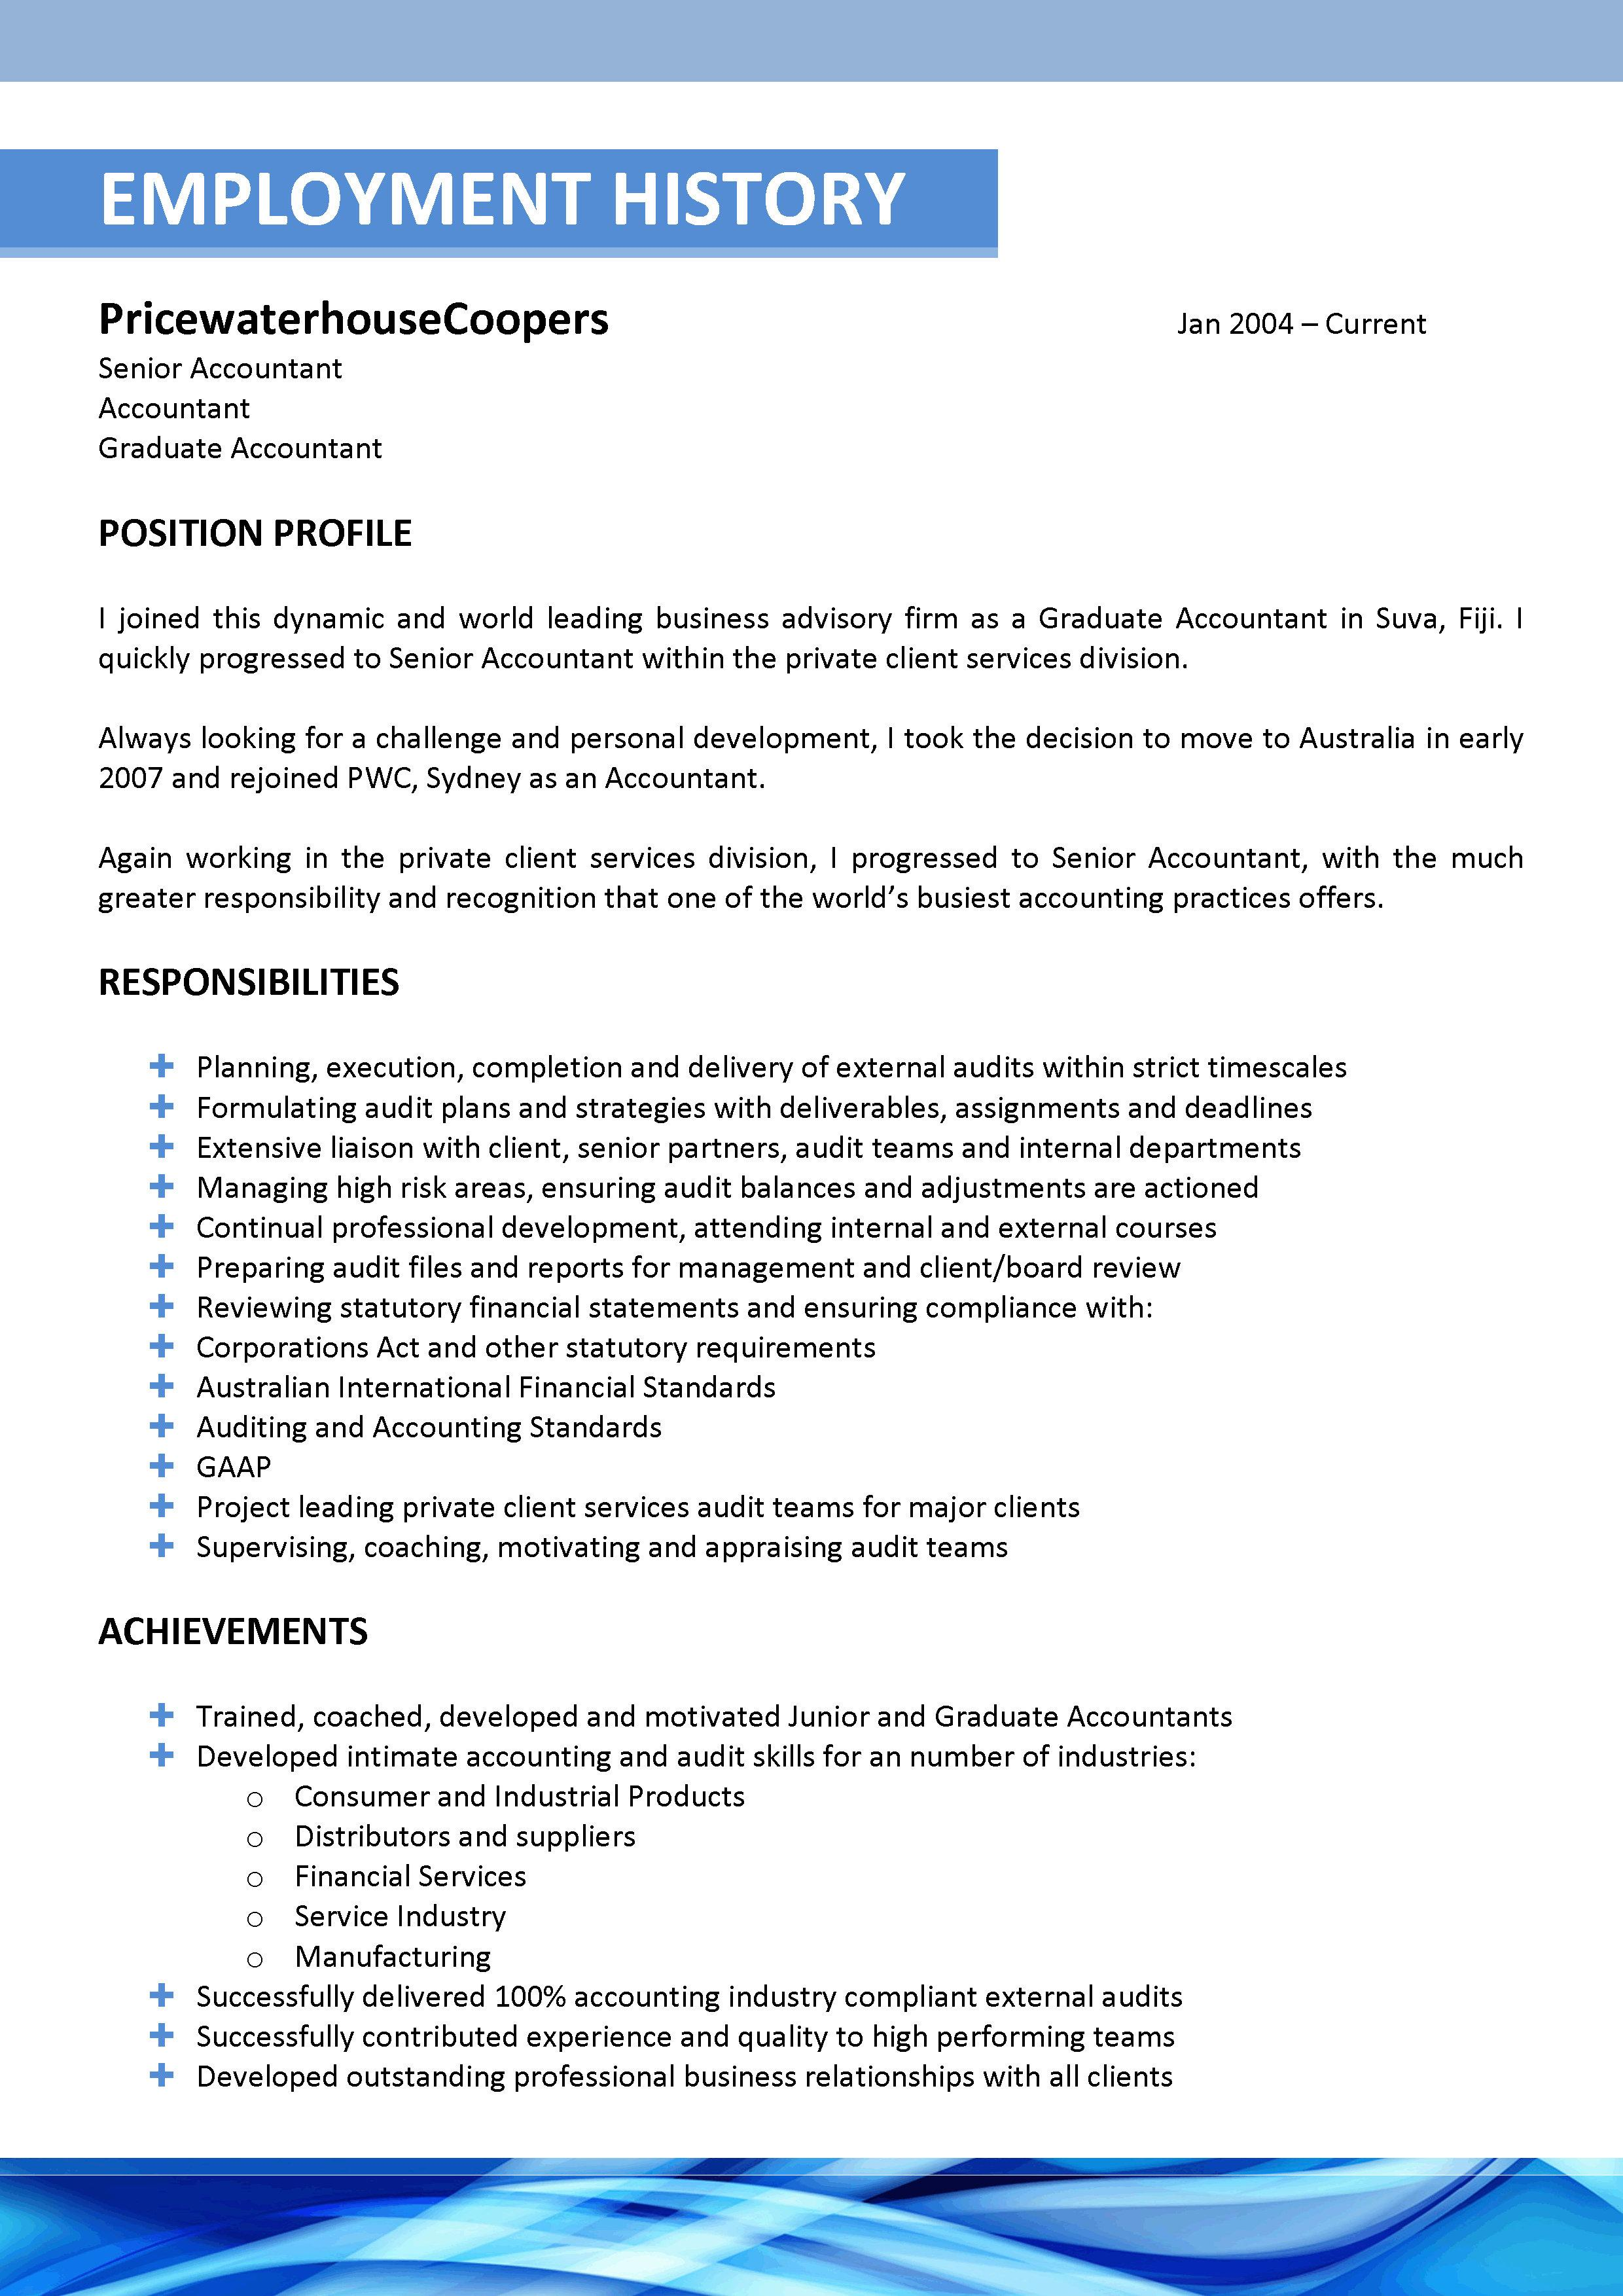 Resume Template Word It Professional We Can Help With Professional Resume Writing Resume